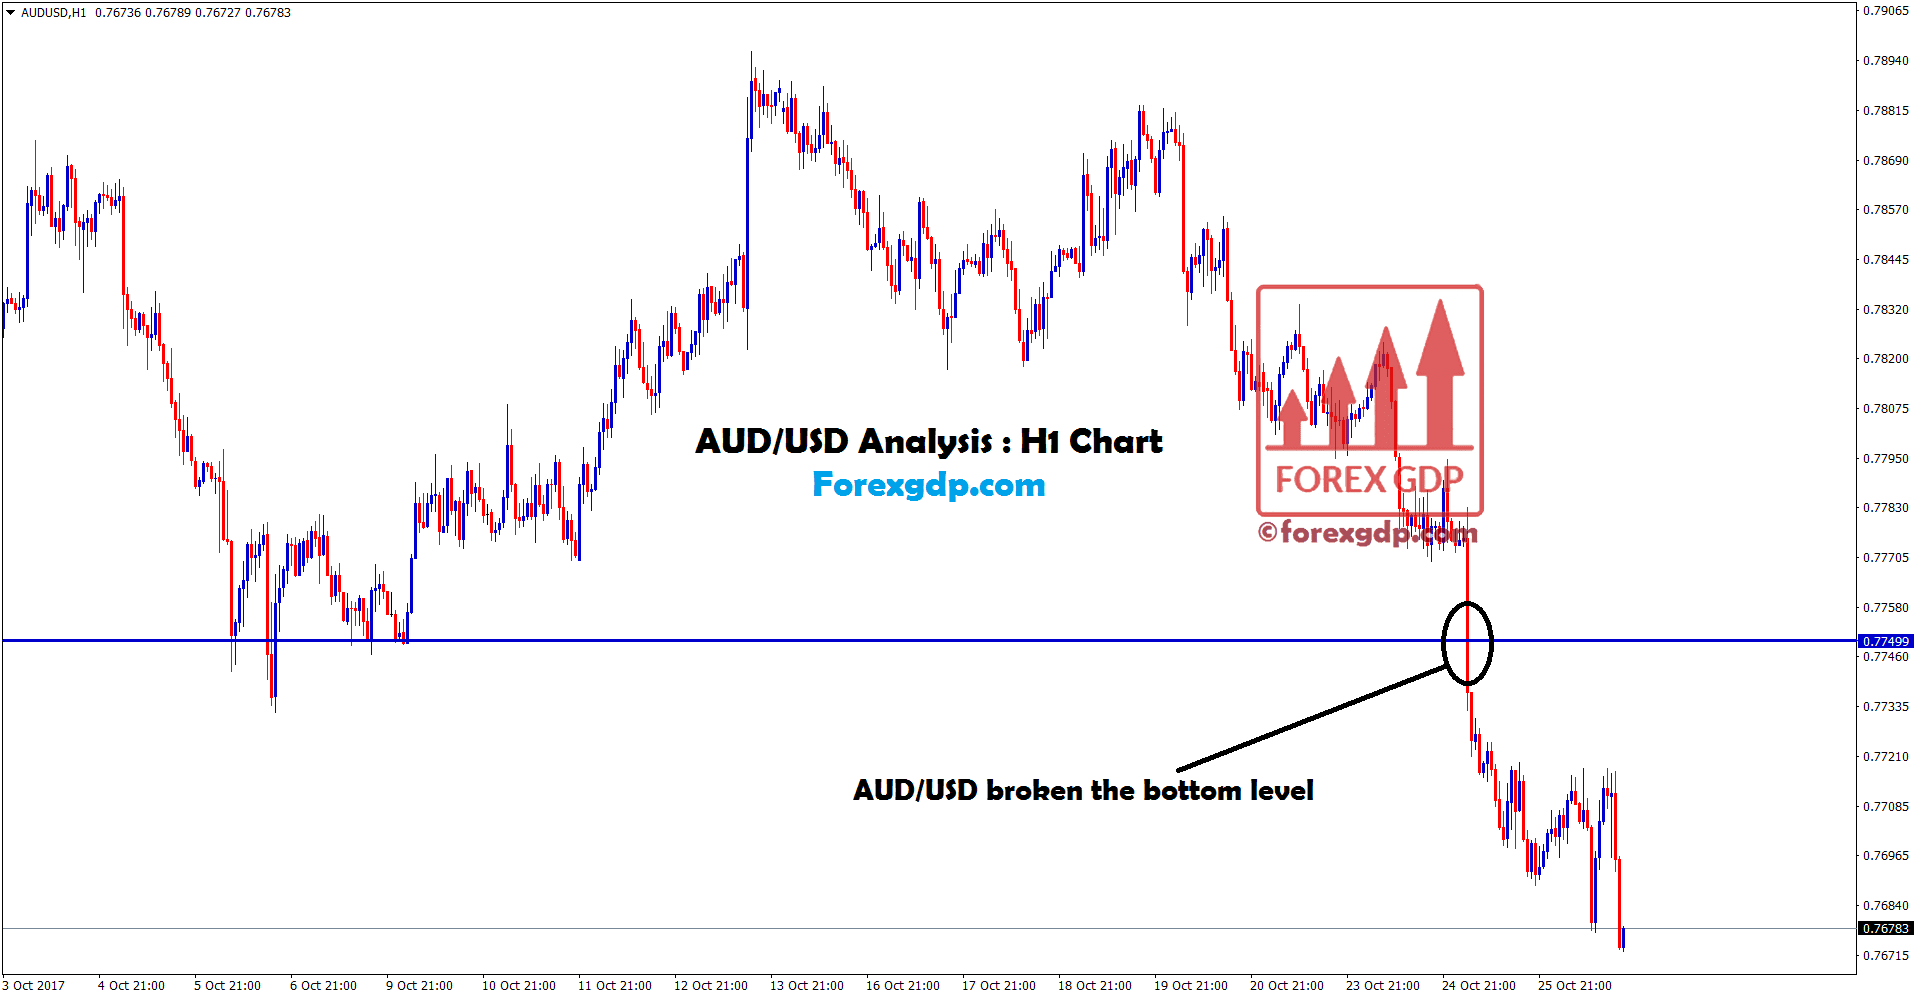 AUDUSD forex signals providers at the breakout